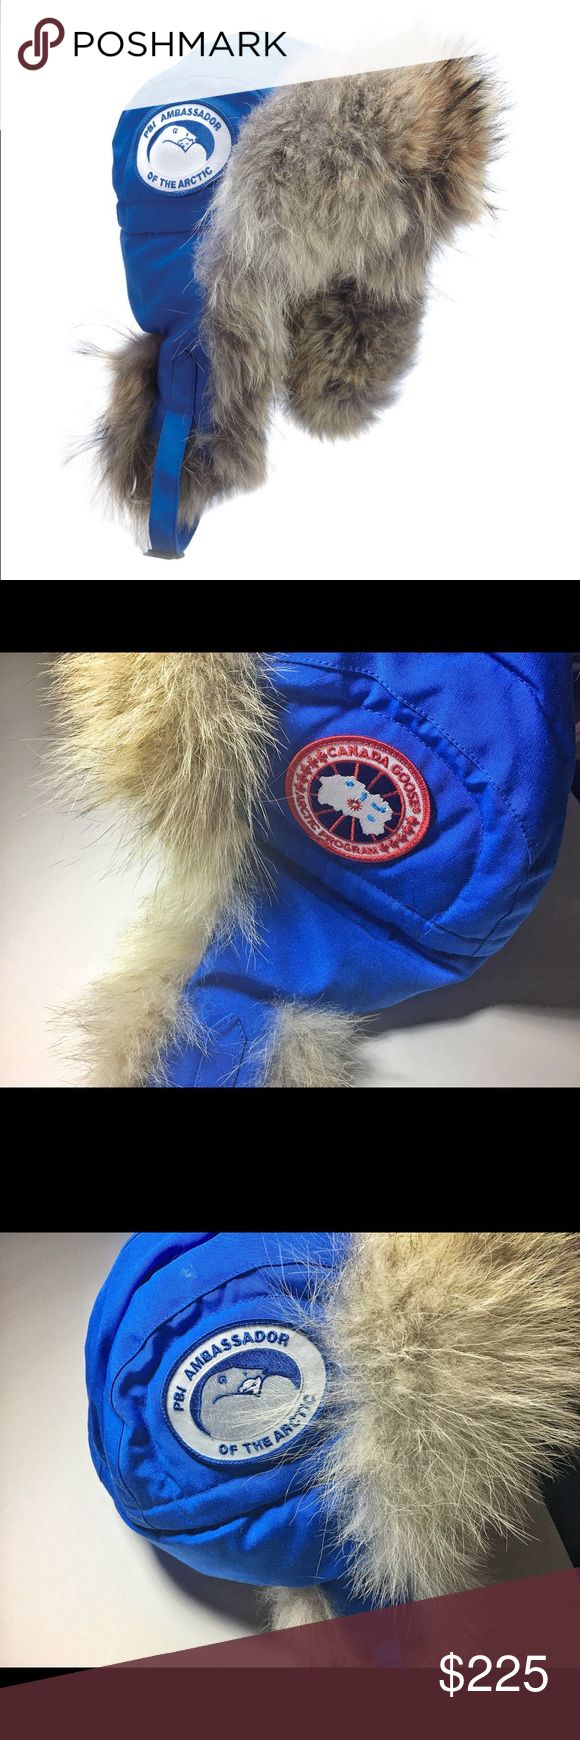 "Canada Goose PBI Aviatoe Hat L/XL ""Turn-of-the-century pilot style with modern-day durability and warmth""  Style #: 5187MPB  FILL: 625 Fill Power White Duck Down  Features: Water-resistant Arctic-Tech fabric exterior for durability and weather-resistance, Coyote fur ruff visor and ear-flaps are a turn-of-the century functional feature that kept pilots warm in an open cockpit at high speeds, Adjustable buckle chin strap for high-wind conditions, Polar Bears International patch on right side…"